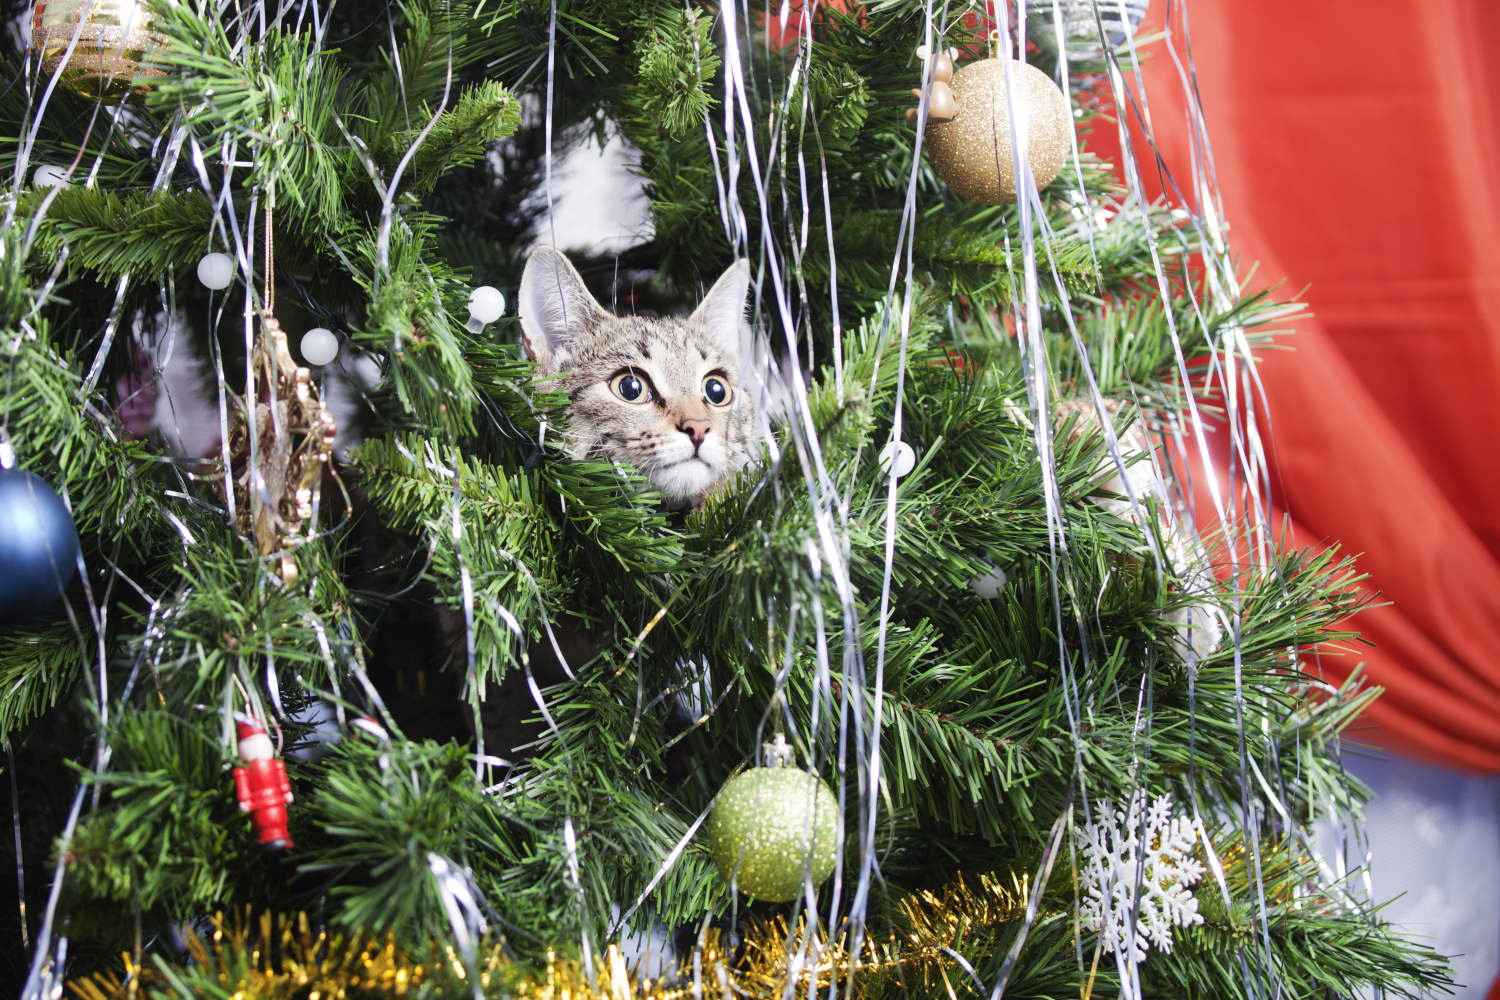 Apparently, Cats Love Climbing in Christmas Trees, and These Pictures Prove It